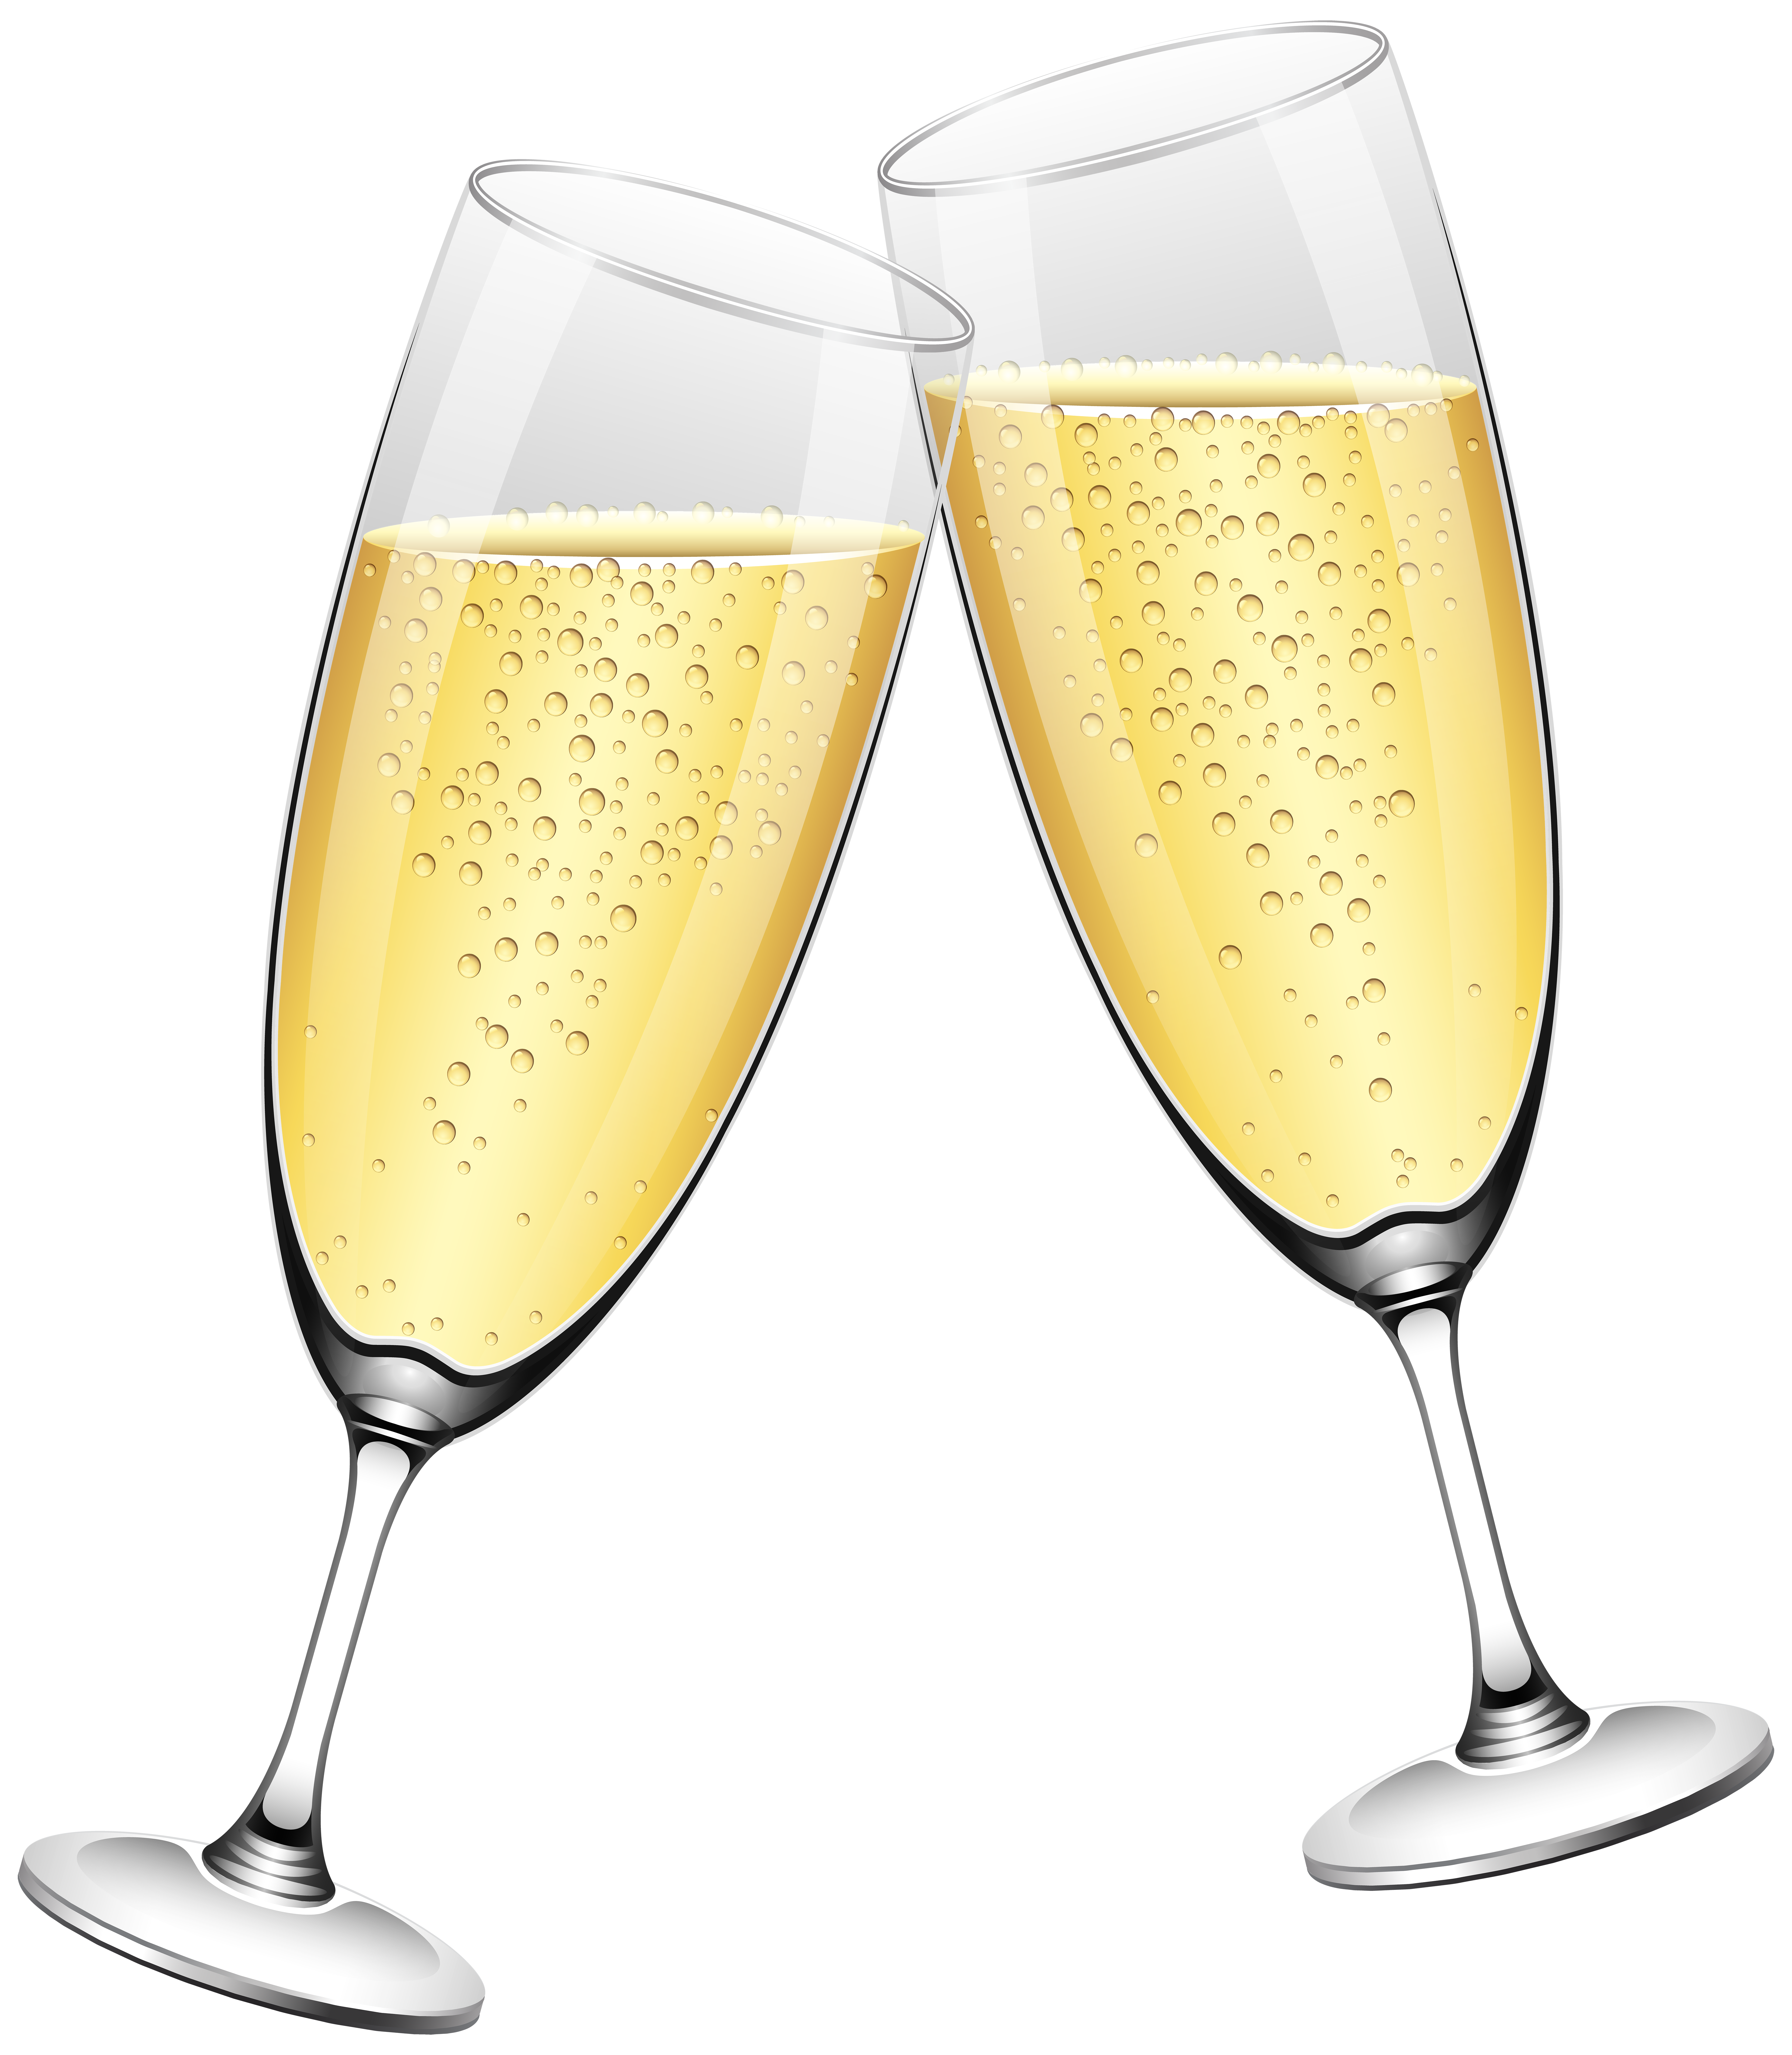 Wedding champagne glass clipart clipart freeuse Wedding Champagne Glasses PNG Clip Art - Best WEB Clipart clipart freeuse